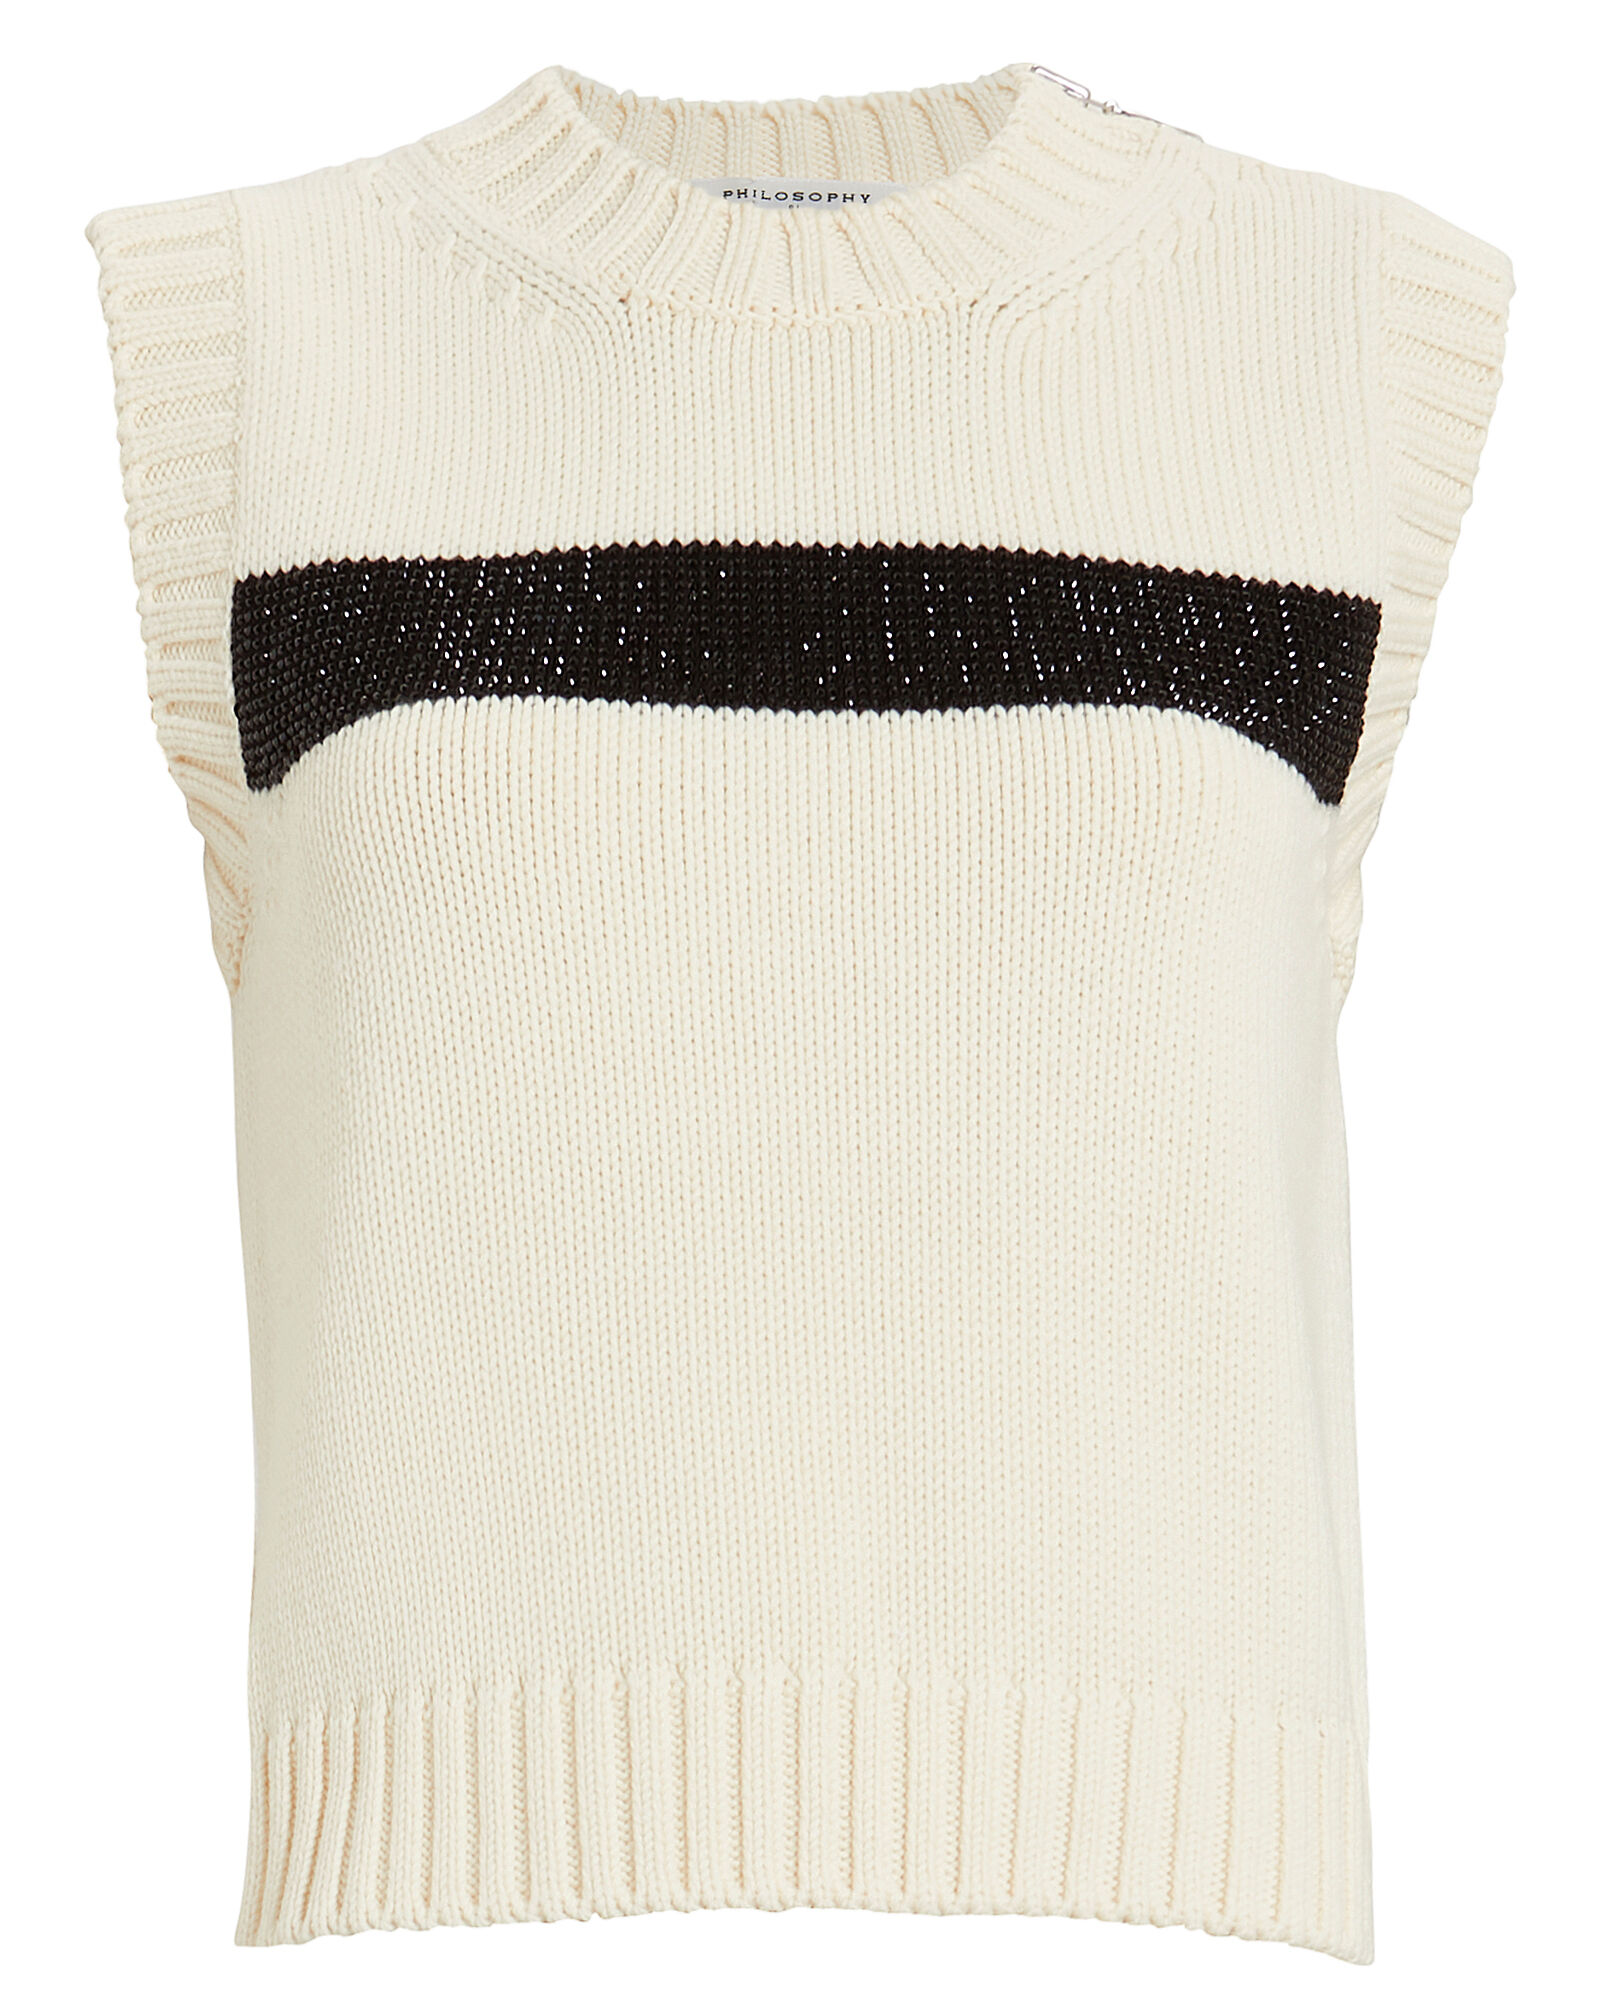 Embellished Virgin Wool Sweater Vest, IVORY, hi-res